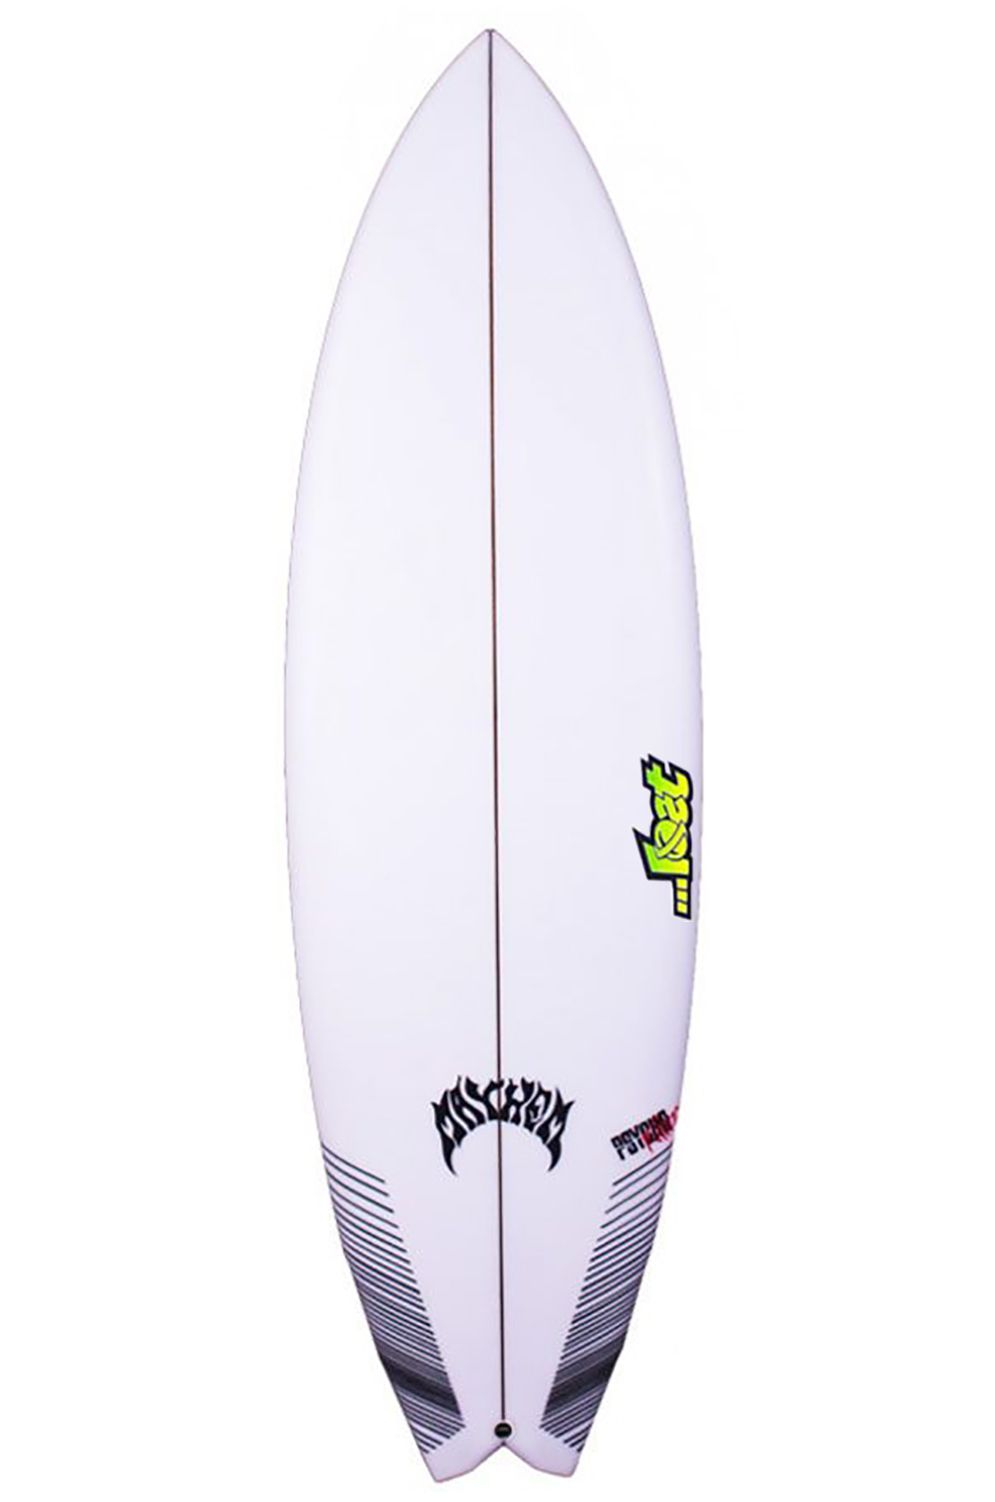 Prancha Surf Lost 5'11 PSYCHO KILLER Swallow Tail - White FCS II Multisystem 5ft11